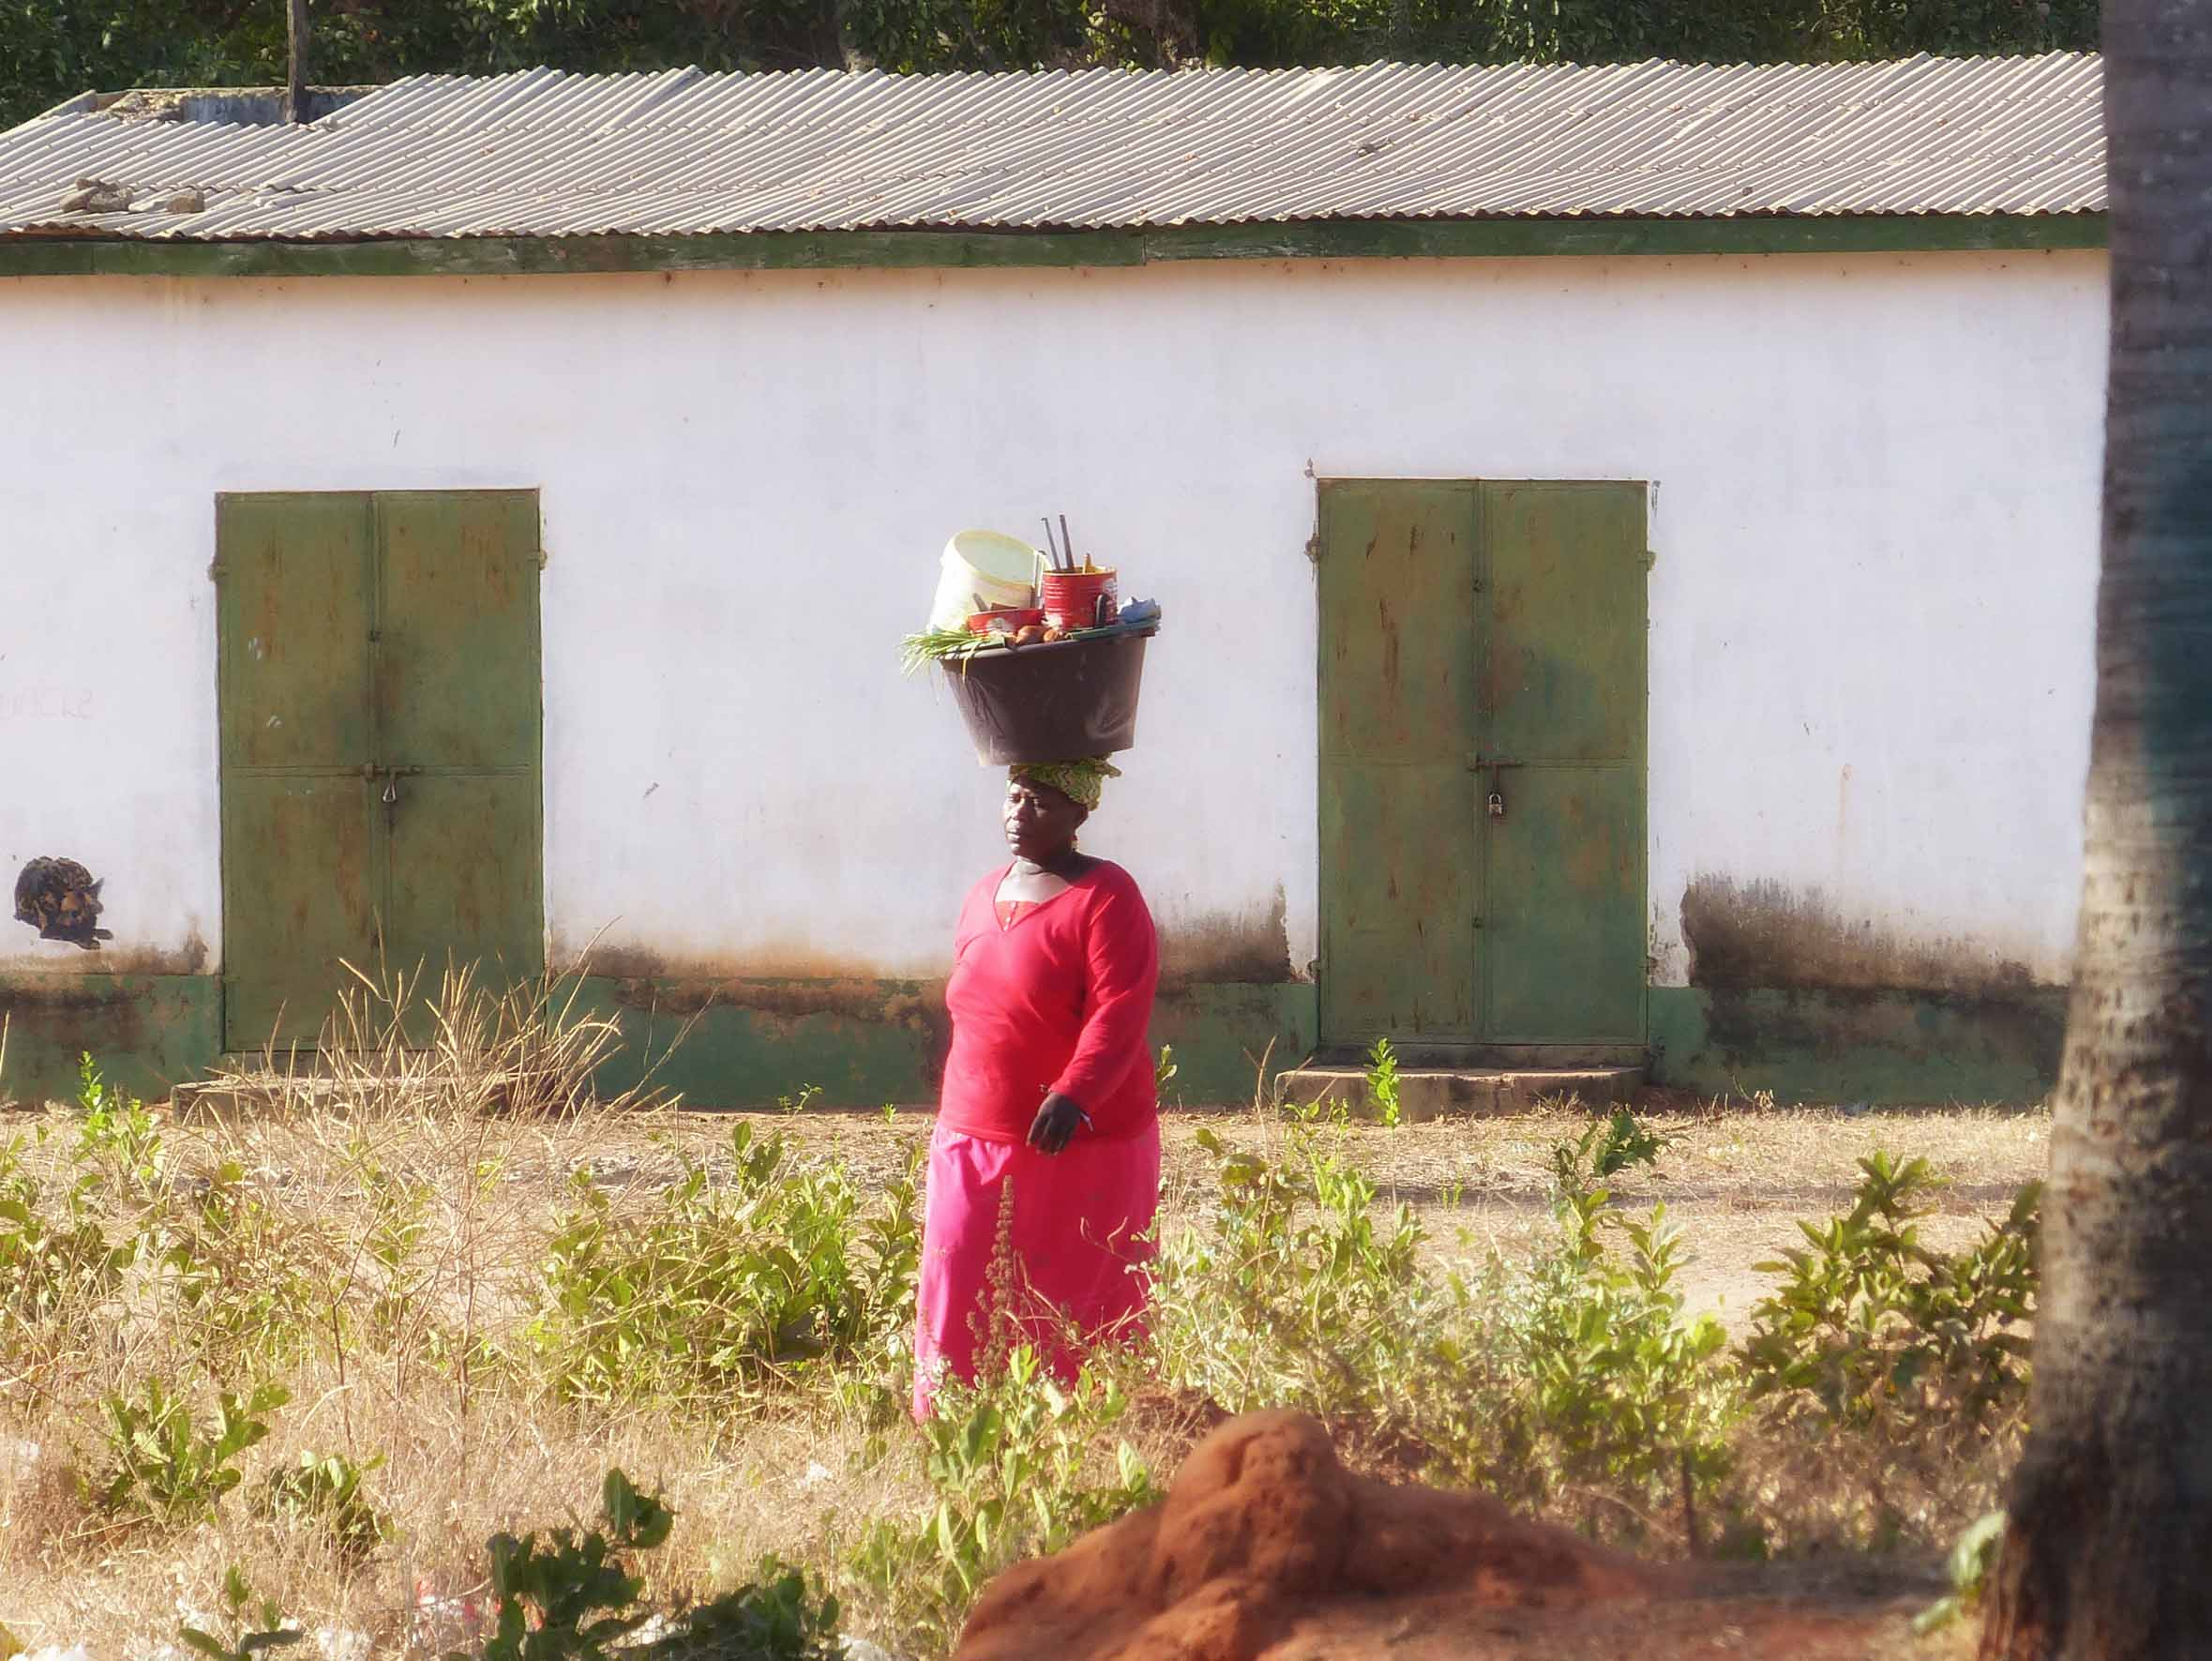 Woman in red dress carrying basket on her head